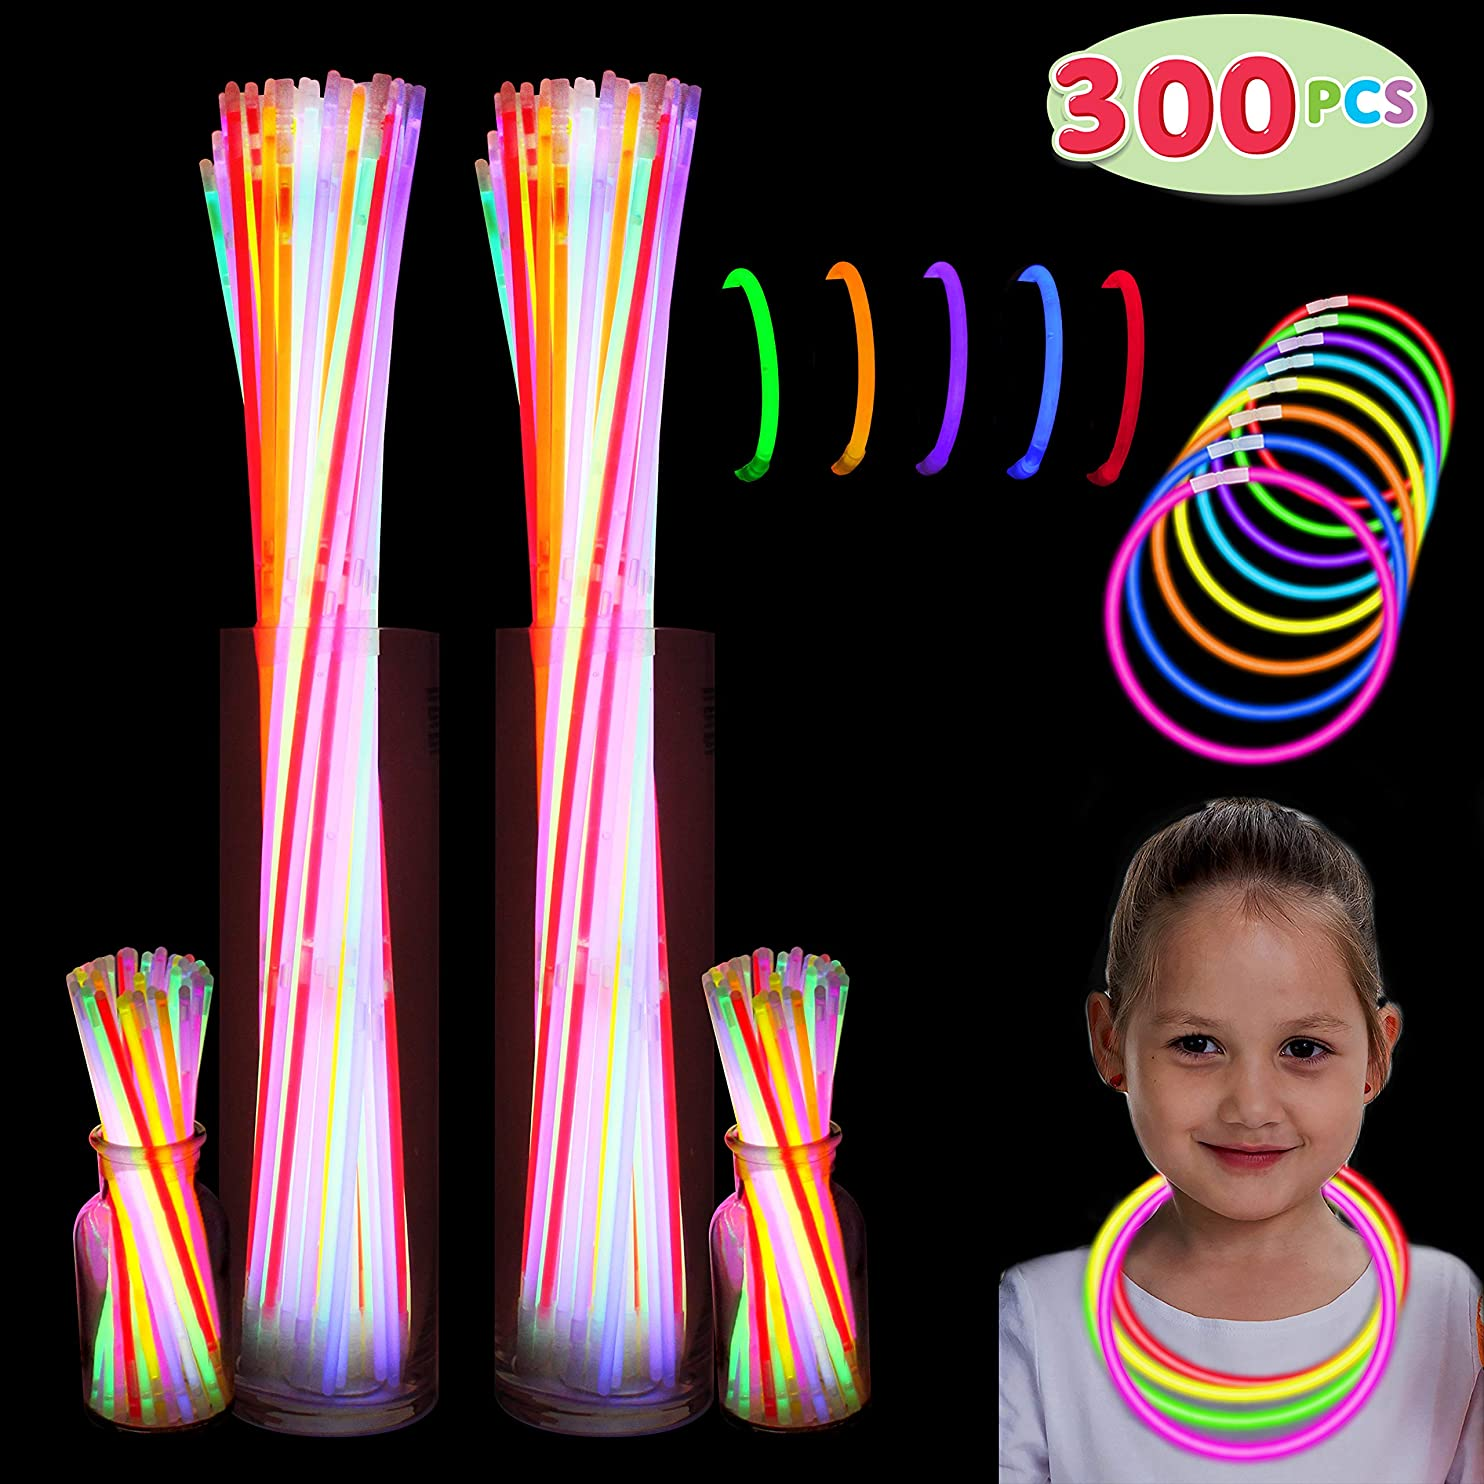 """300 Pack Glow Sticks with 100 22"""" Necklaces + 200 8"""" Bracelets; Connector Included; Glowstick Bundle Party Favors, Glow in the Dark Party Bulk Supplies, Neon Light Up Accessories for Kids and Adults. crtzmpmolhd56"""